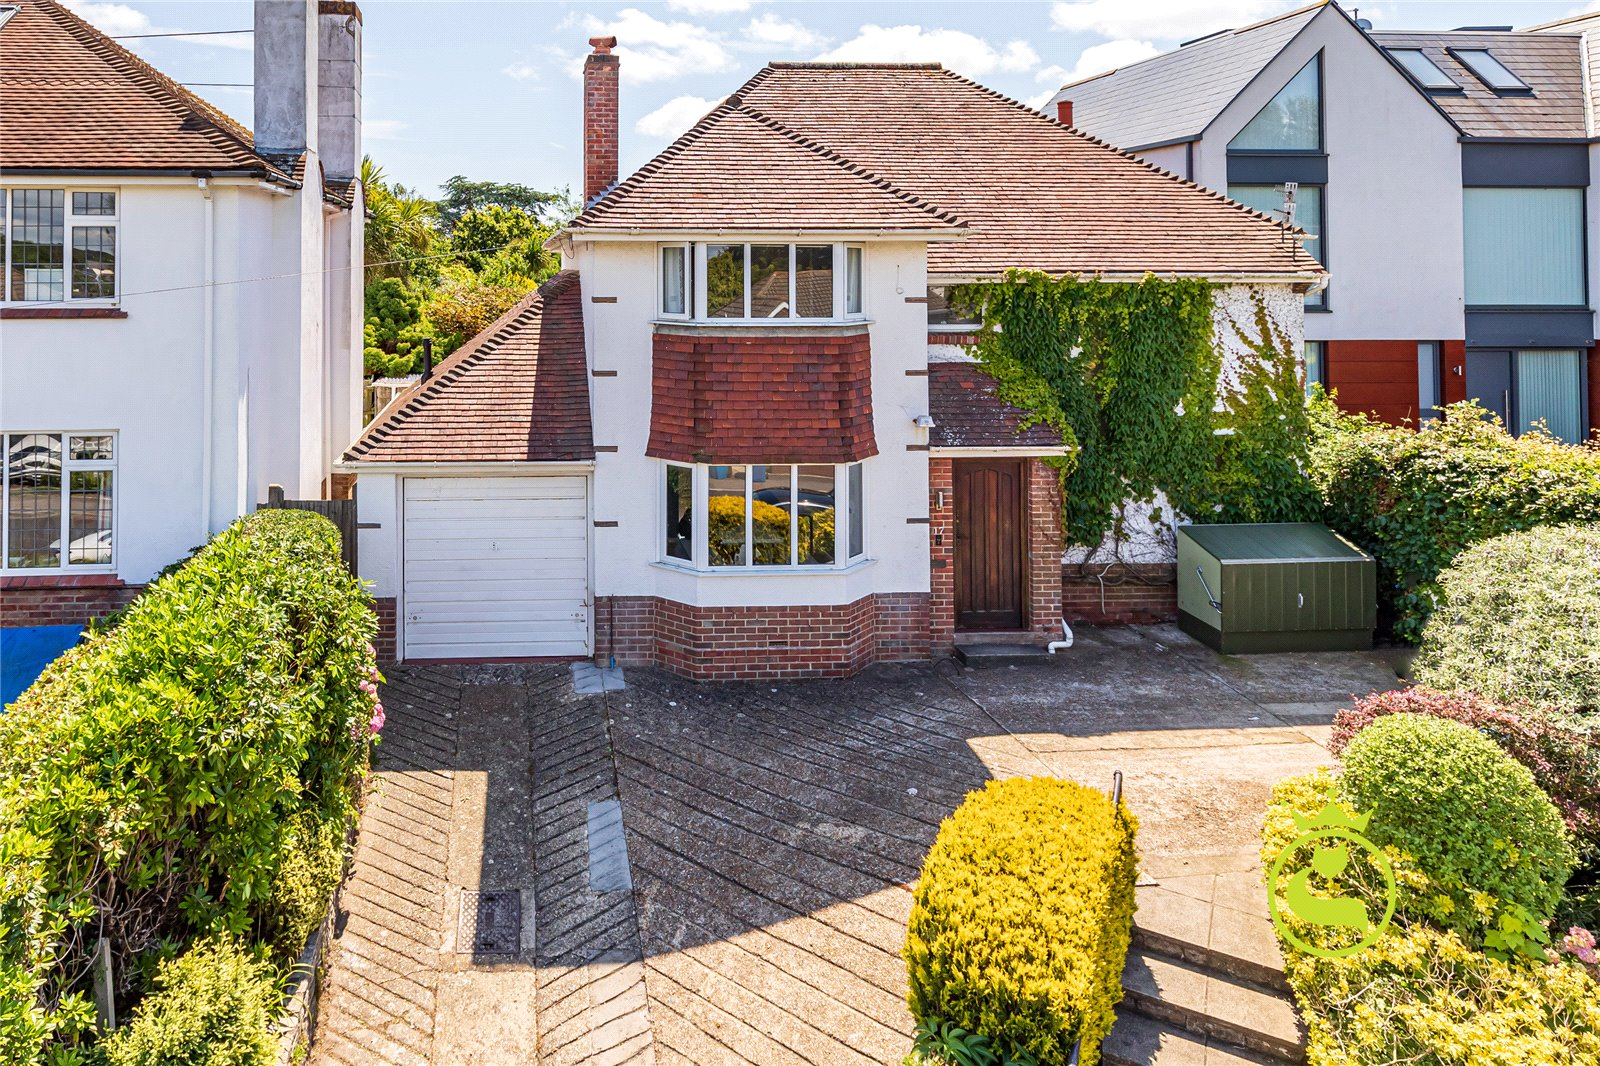 3 bed for sale in Pearce Avenue, Lilliput, BH14